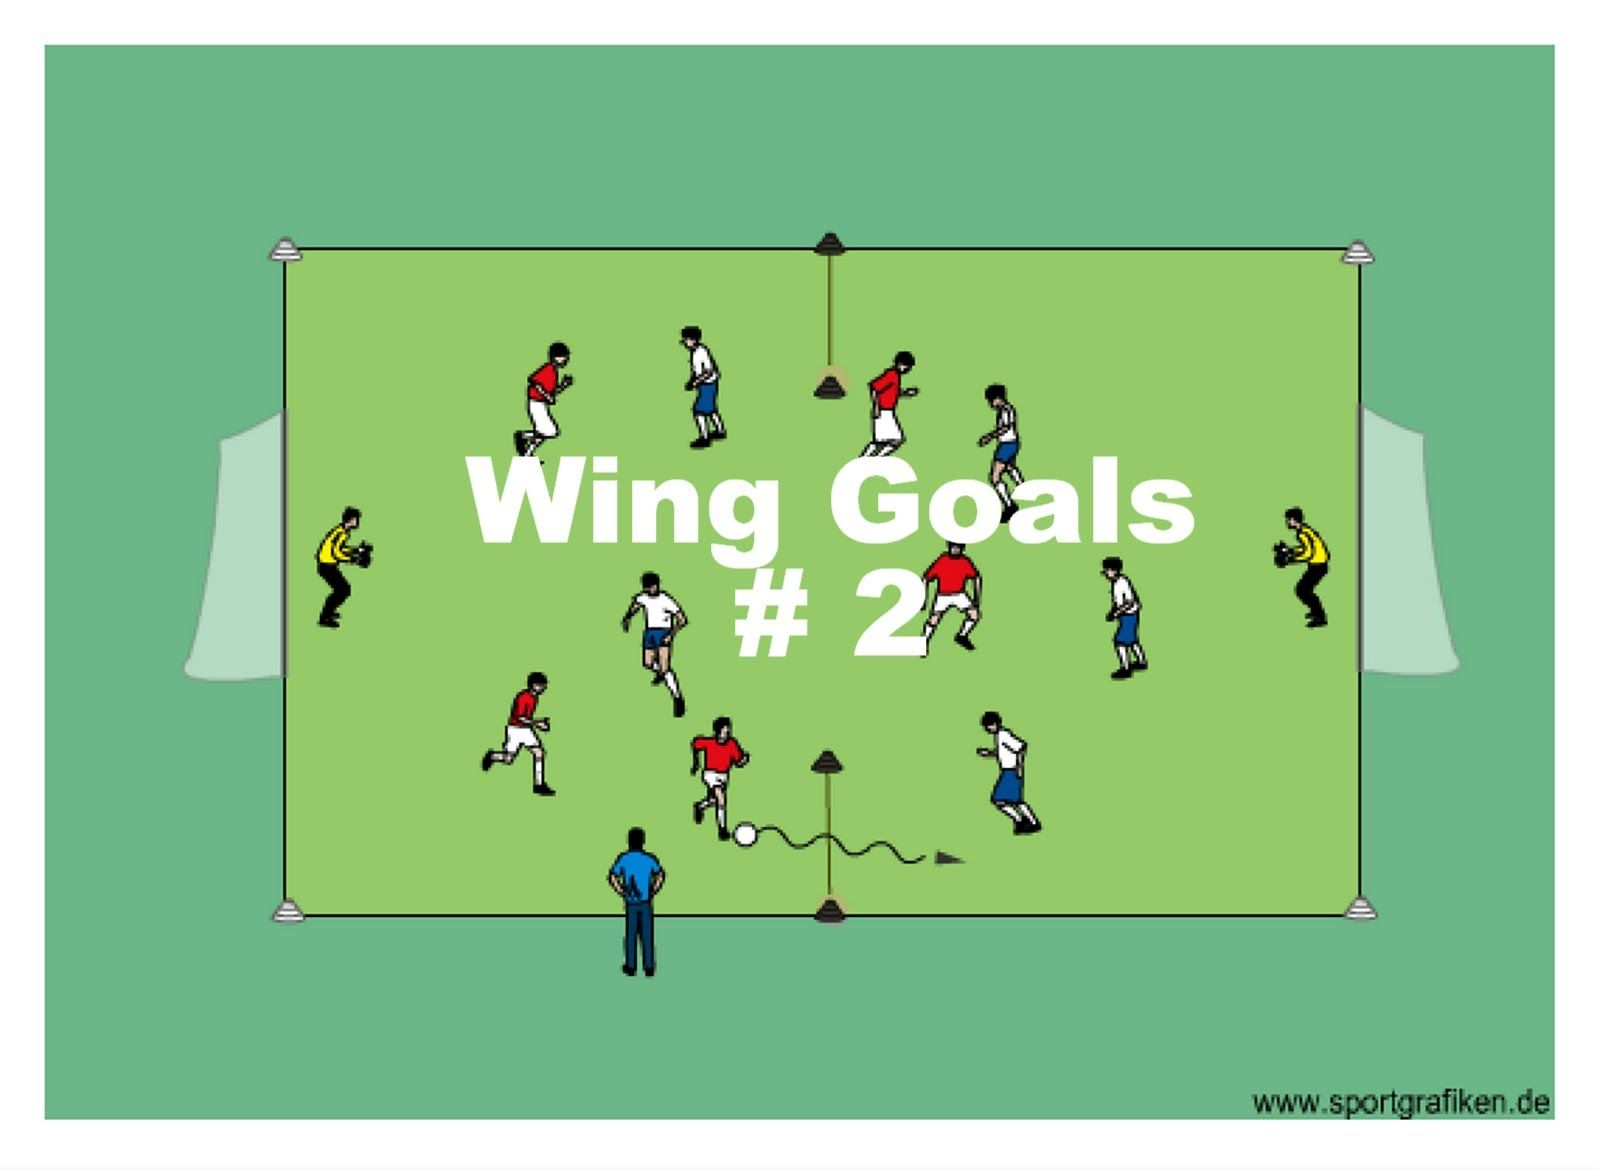 Http Www Top Soccer Drills Com Wing Goals 2 Html Soccer Practice Drills Soccer Drills Soccer Inspiration Rules For Kids